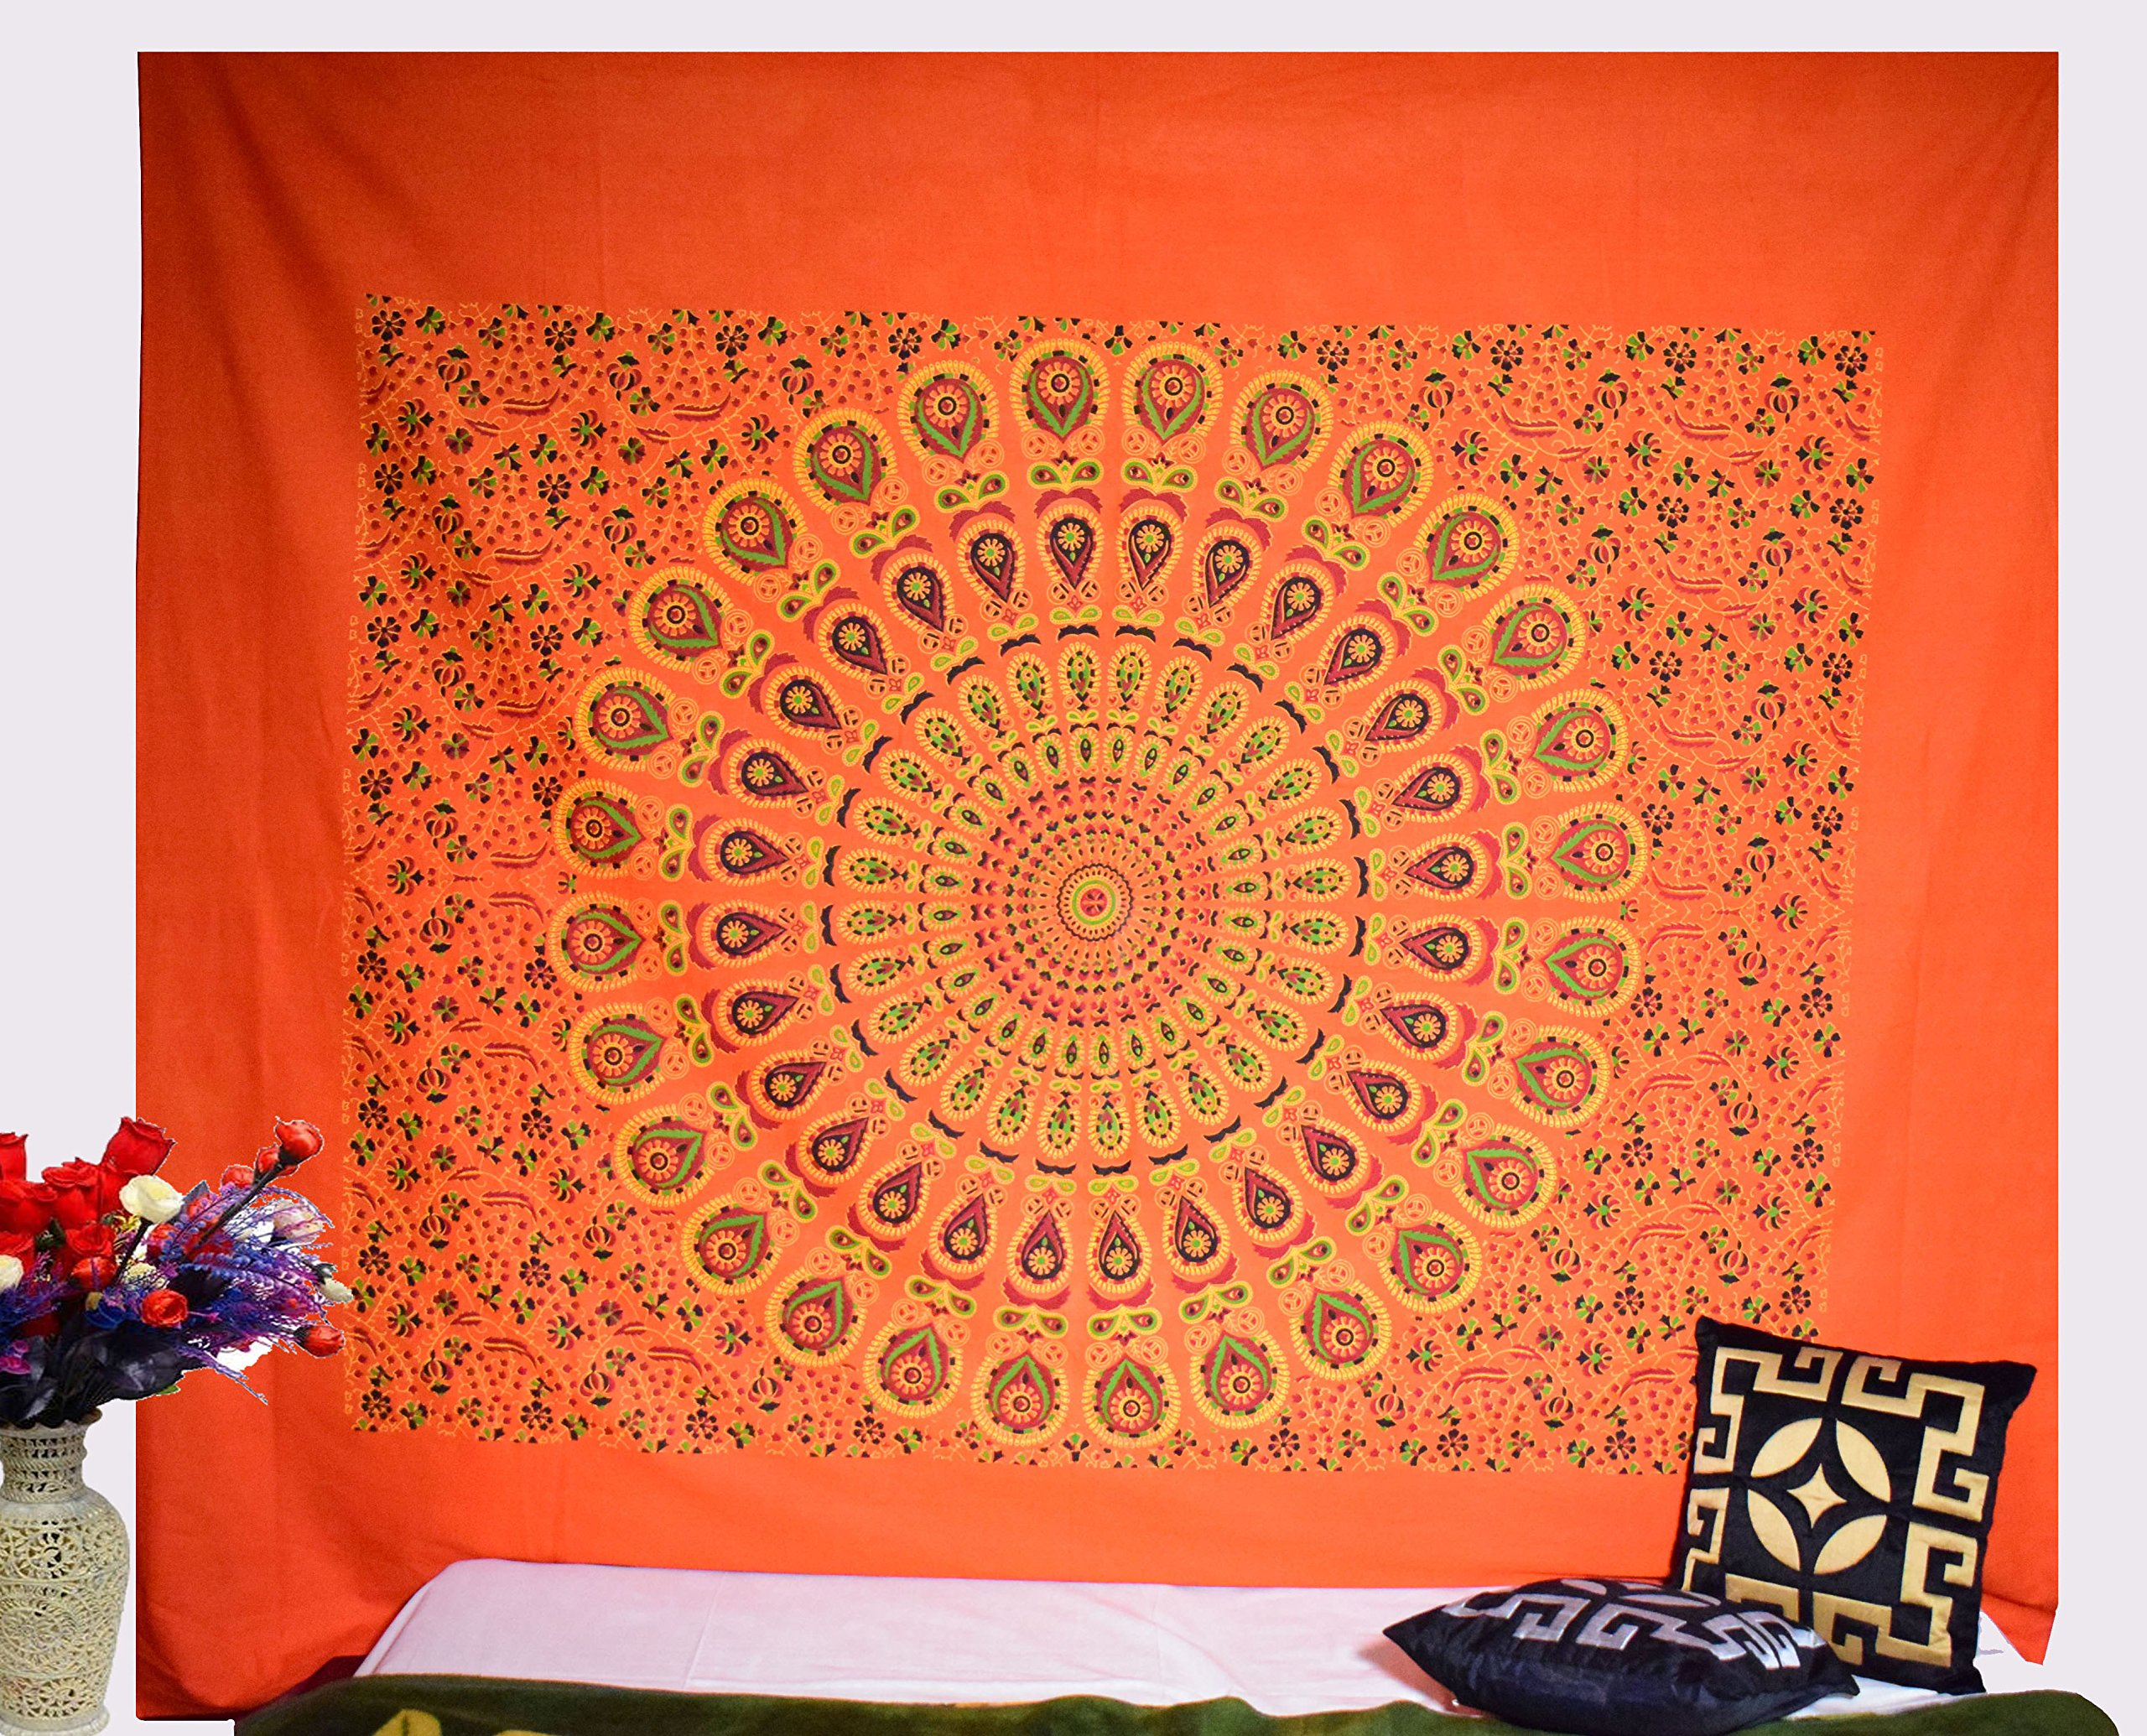 Hashcart Handmade Wooden Block Print Wall Hanging Tapestry/Cotton Tapestry/Cotton Bed Spread/Cotton Bedding Sheet/Cotton Bedsheet, King Size Wall Hanging Home Decor